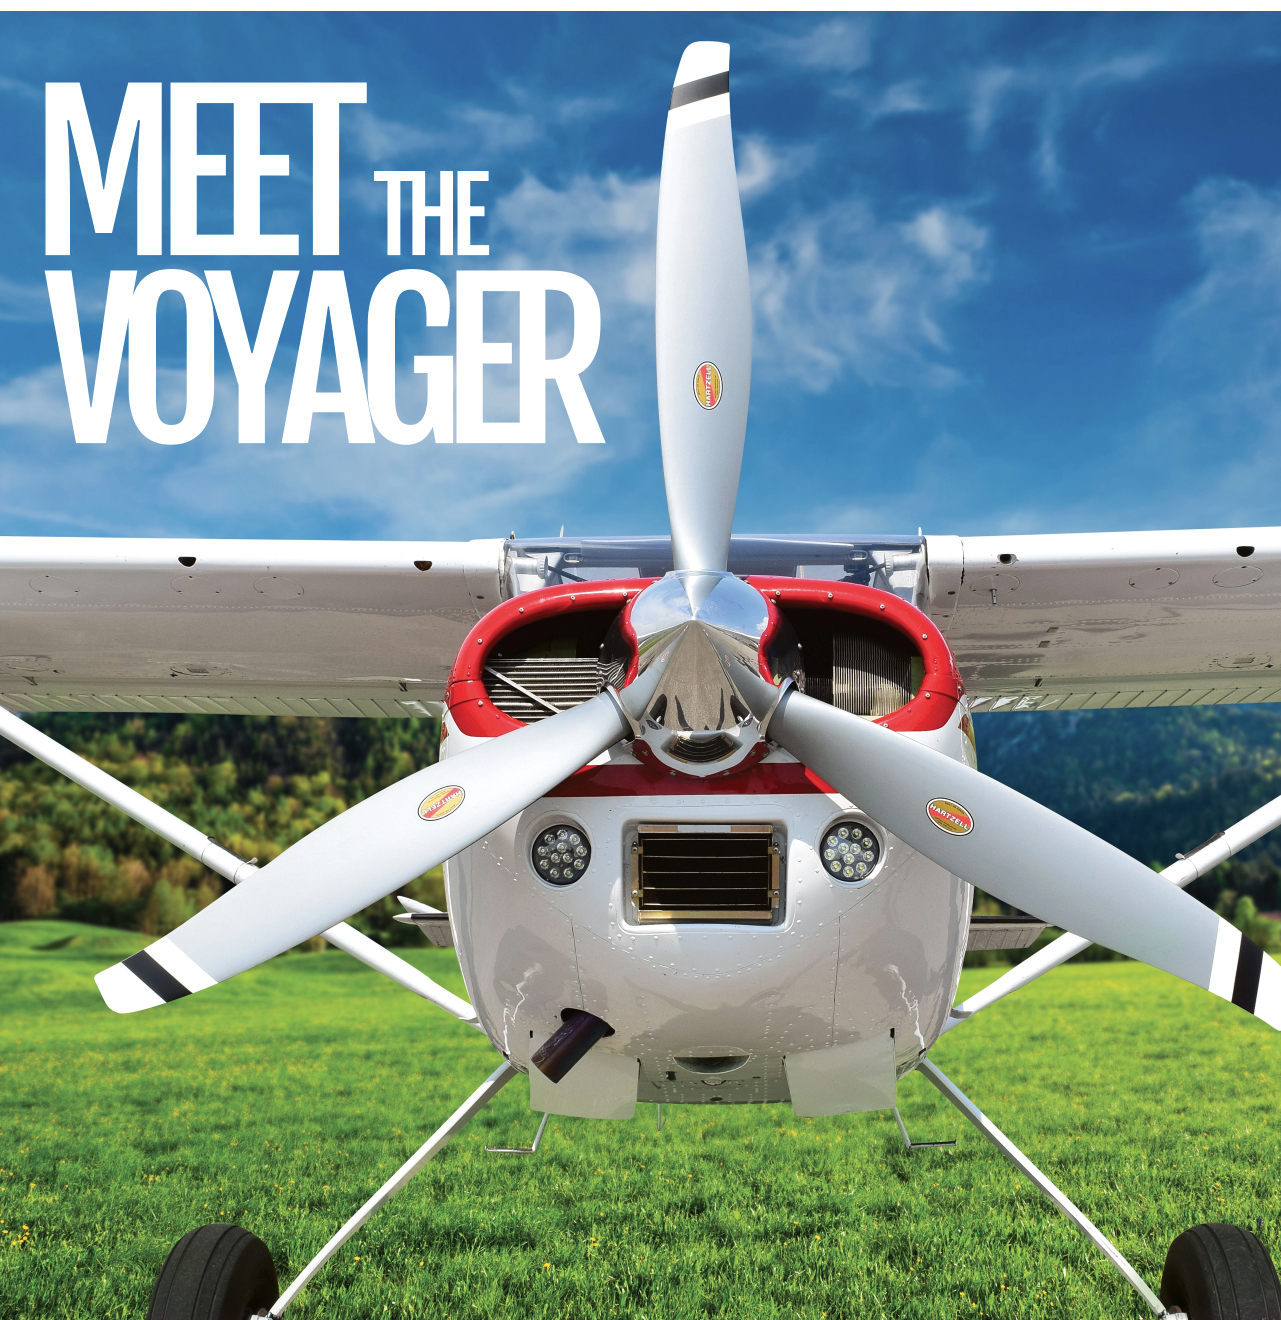 Meet the Voyager